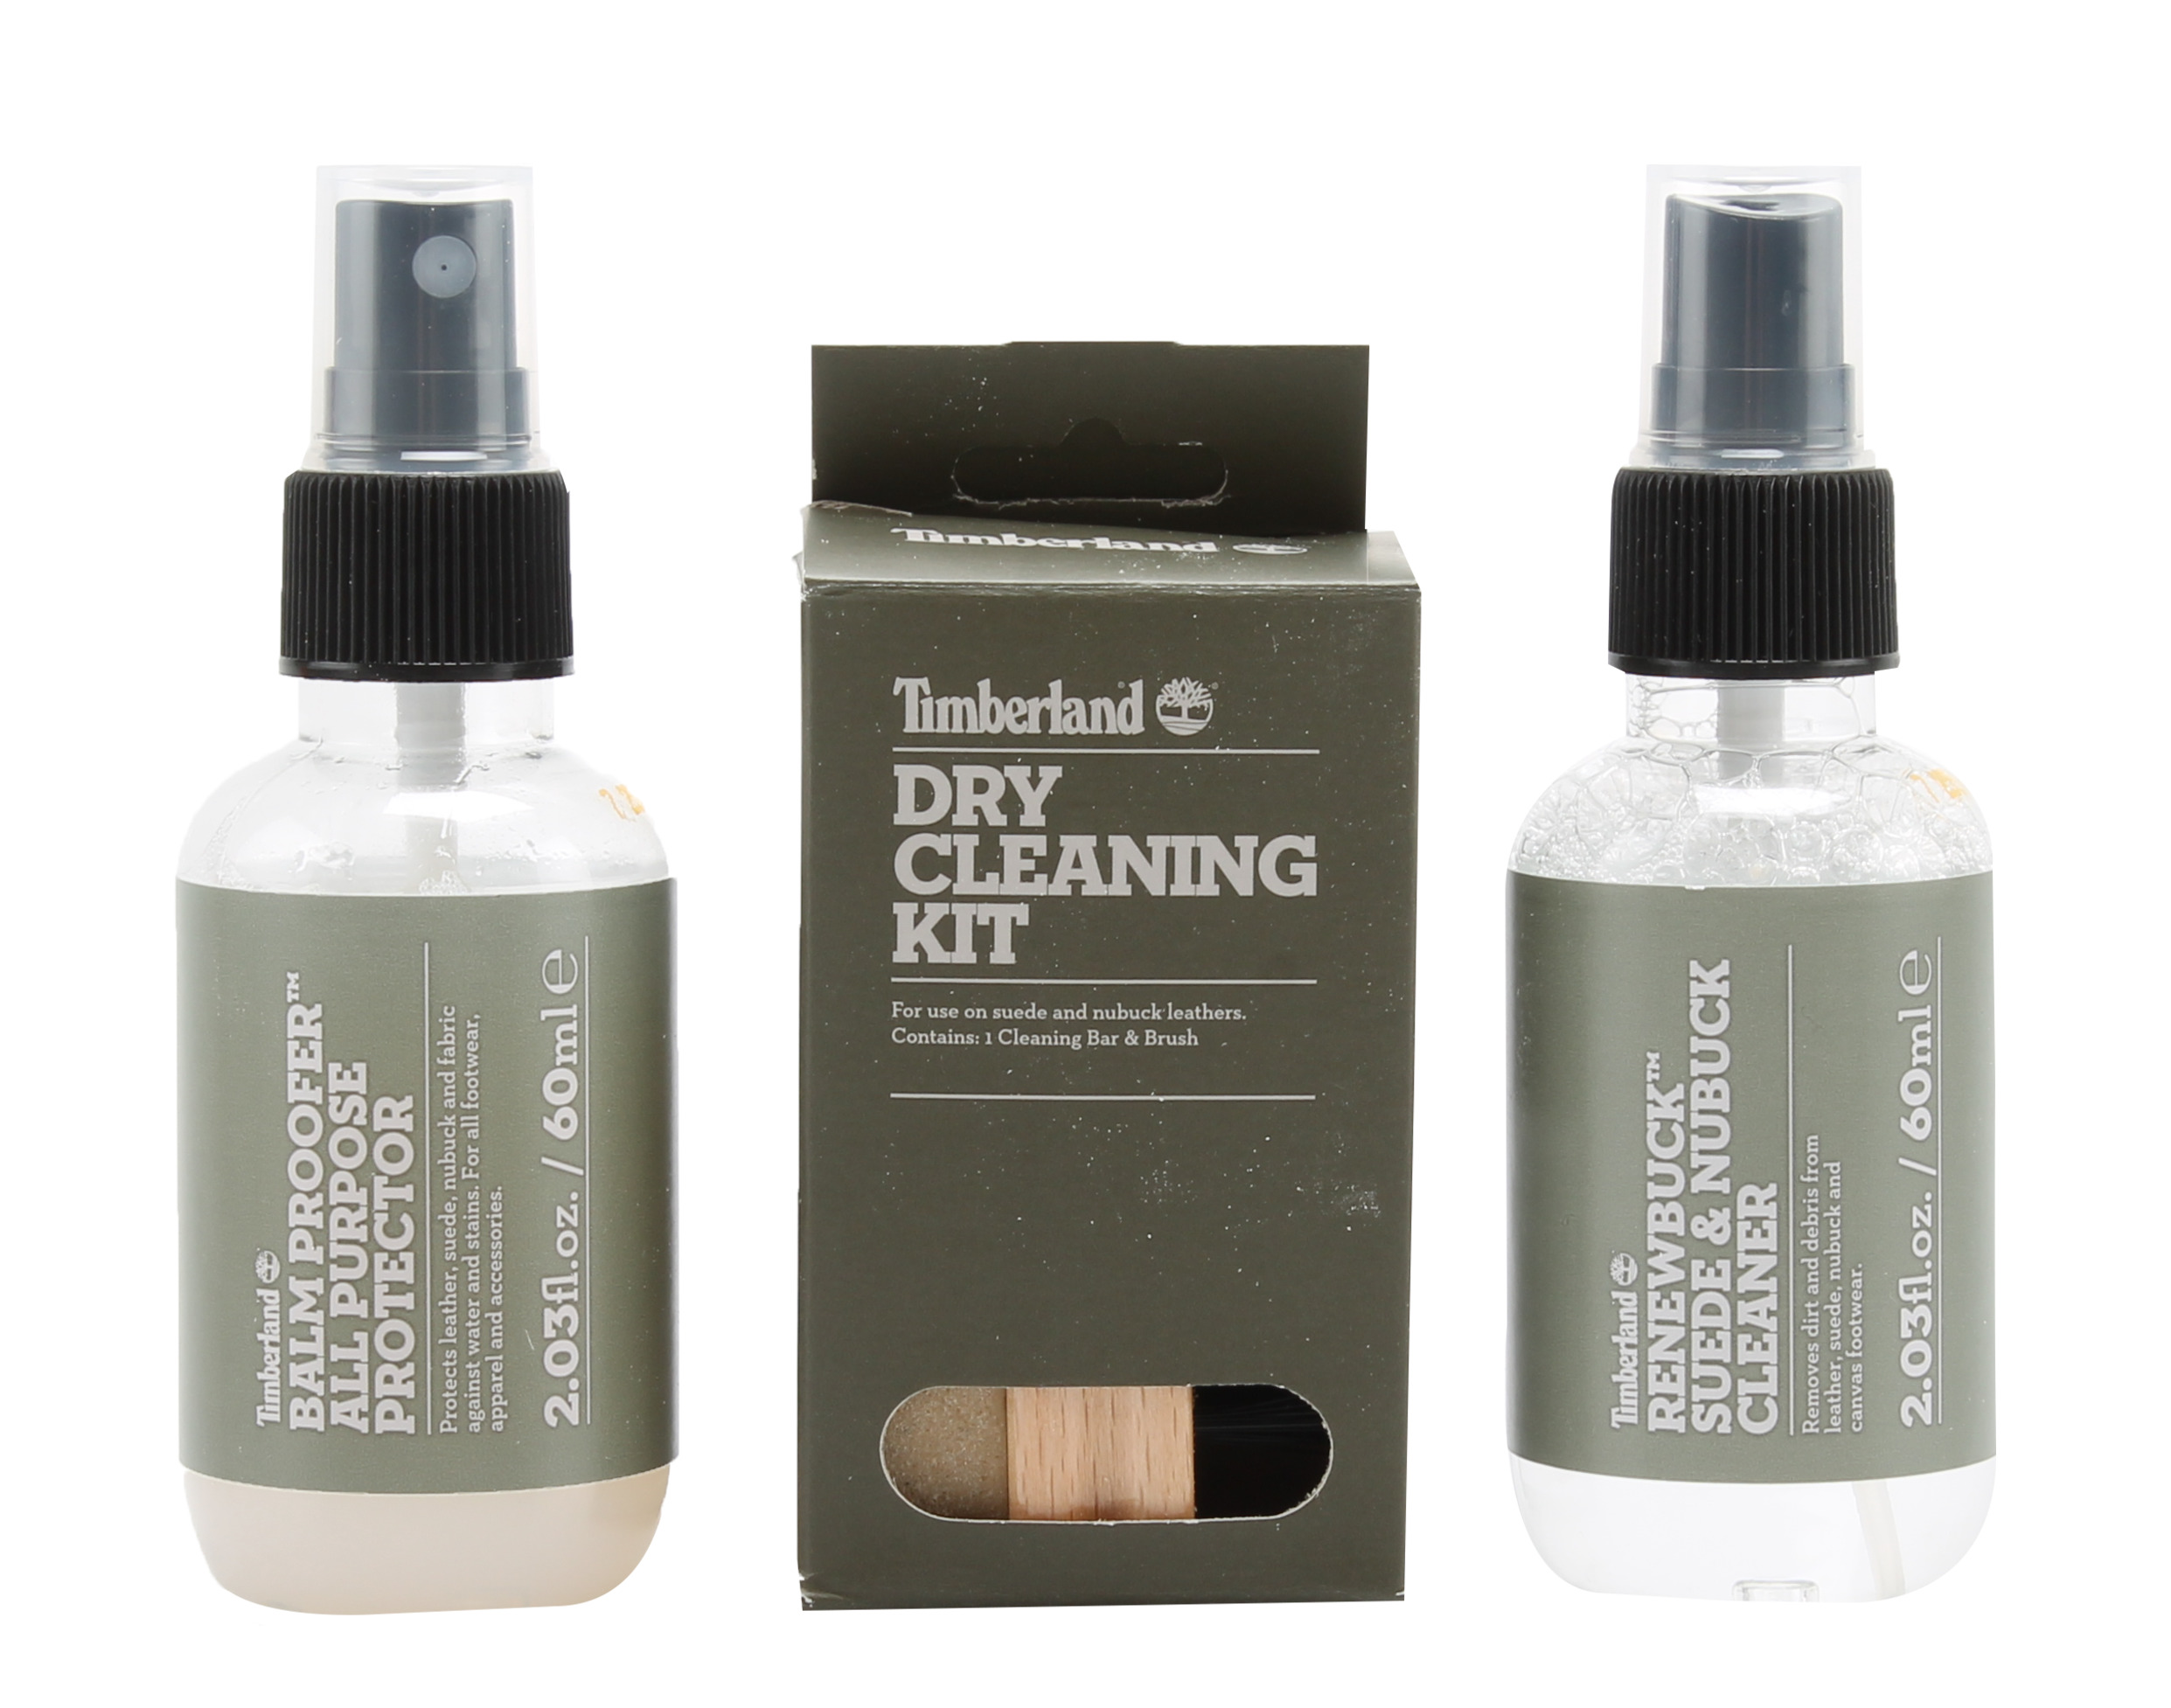 4eecc8fd70 Timberland Travel Product Care Kit Cleaner - Walmart.com